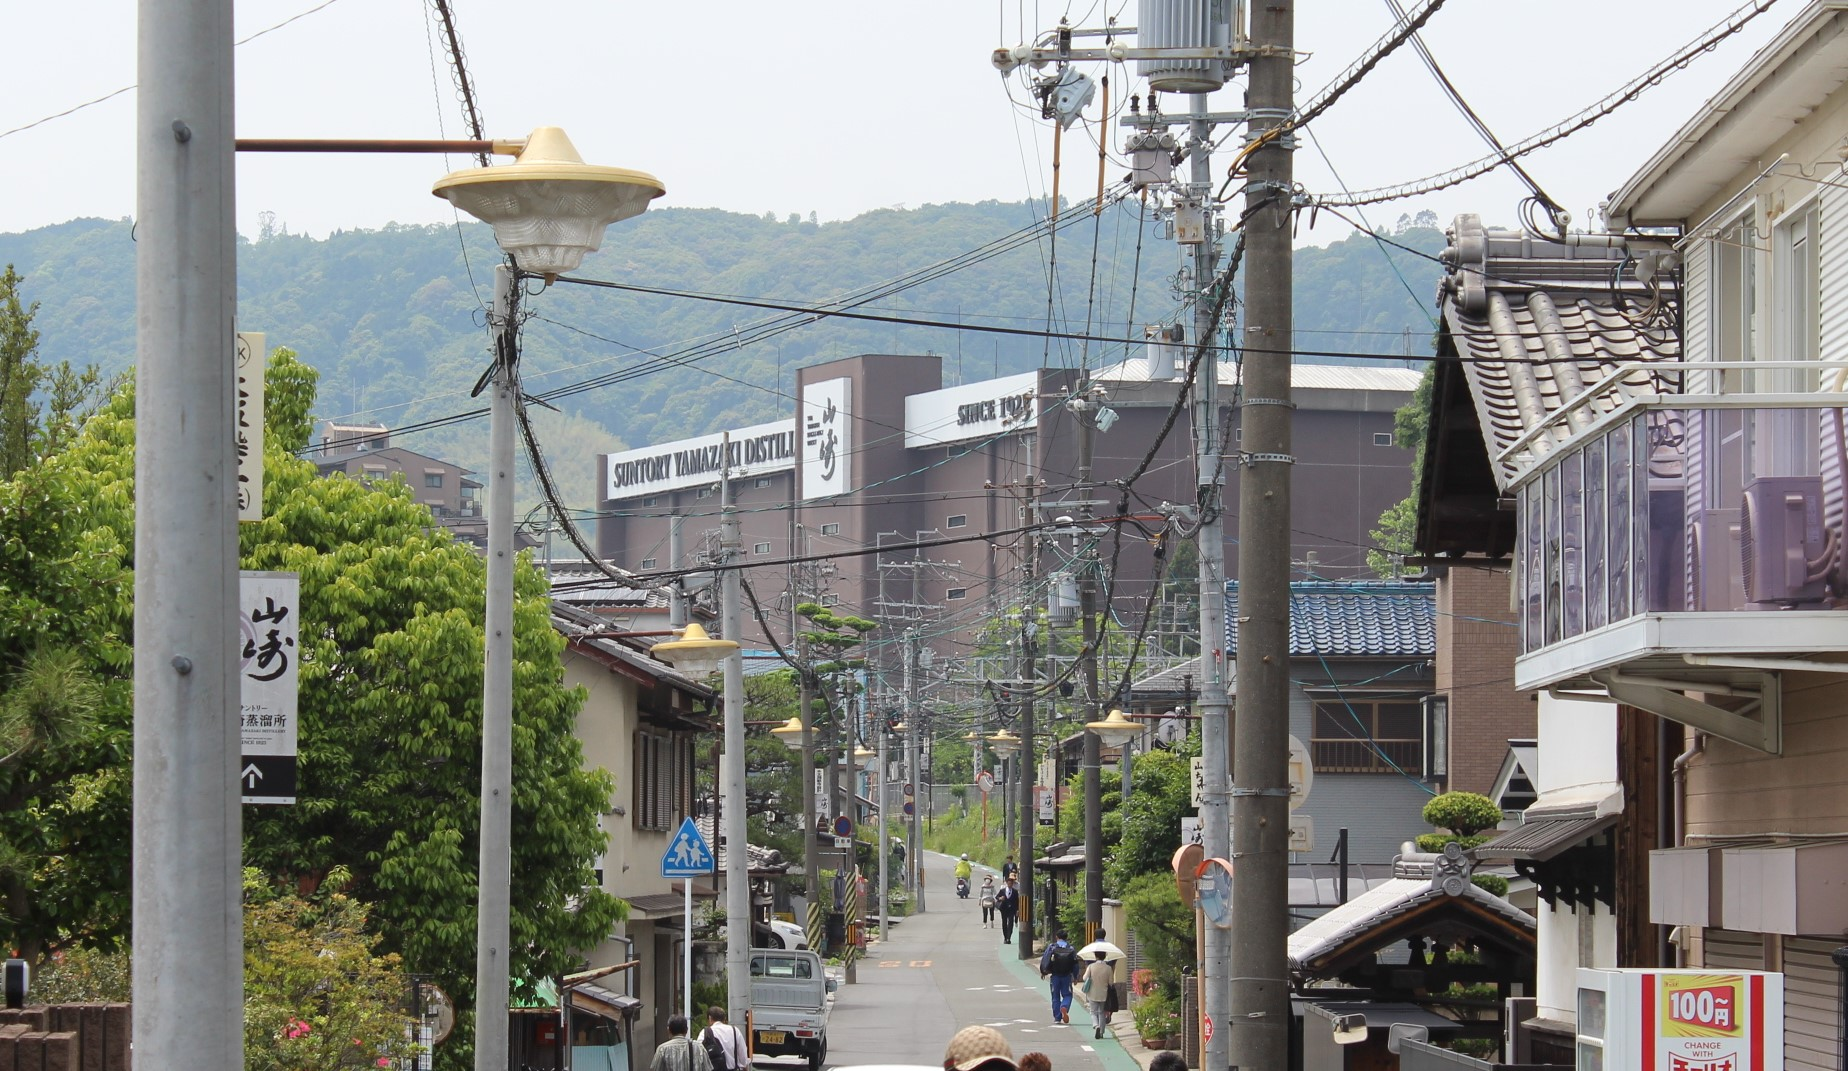 Yamazaki Distillery Tour: A Behind the Scenes Look at Japan's Premier Distillery